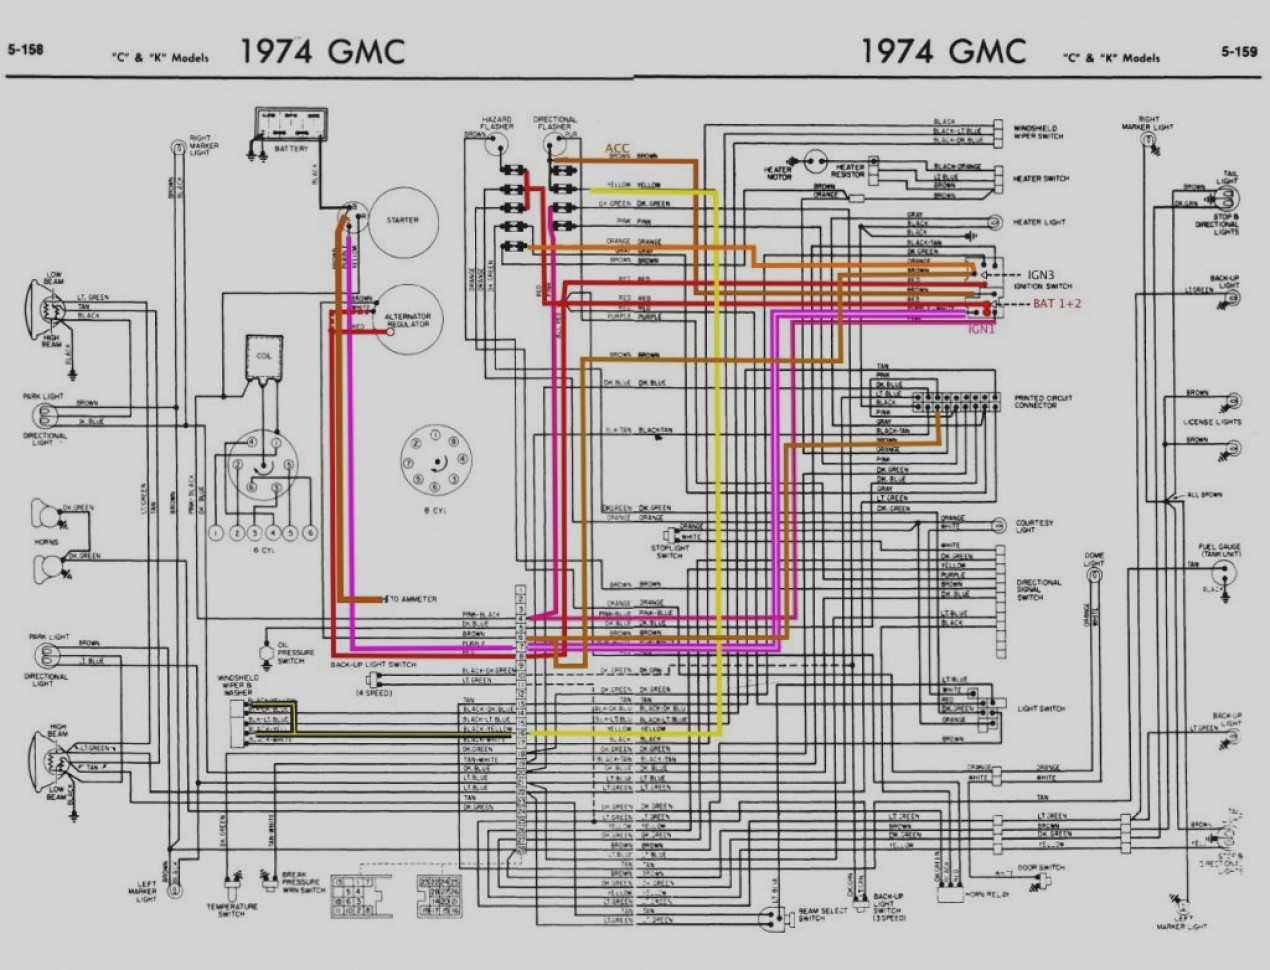 [SCHEMATICS_48DE]  1985 Chevy El Camino Wiring Diagram | Wiring Diagram | 1985 C20 Engine Wiring Diagram |  | Wiring Diagrams - AutoScout24